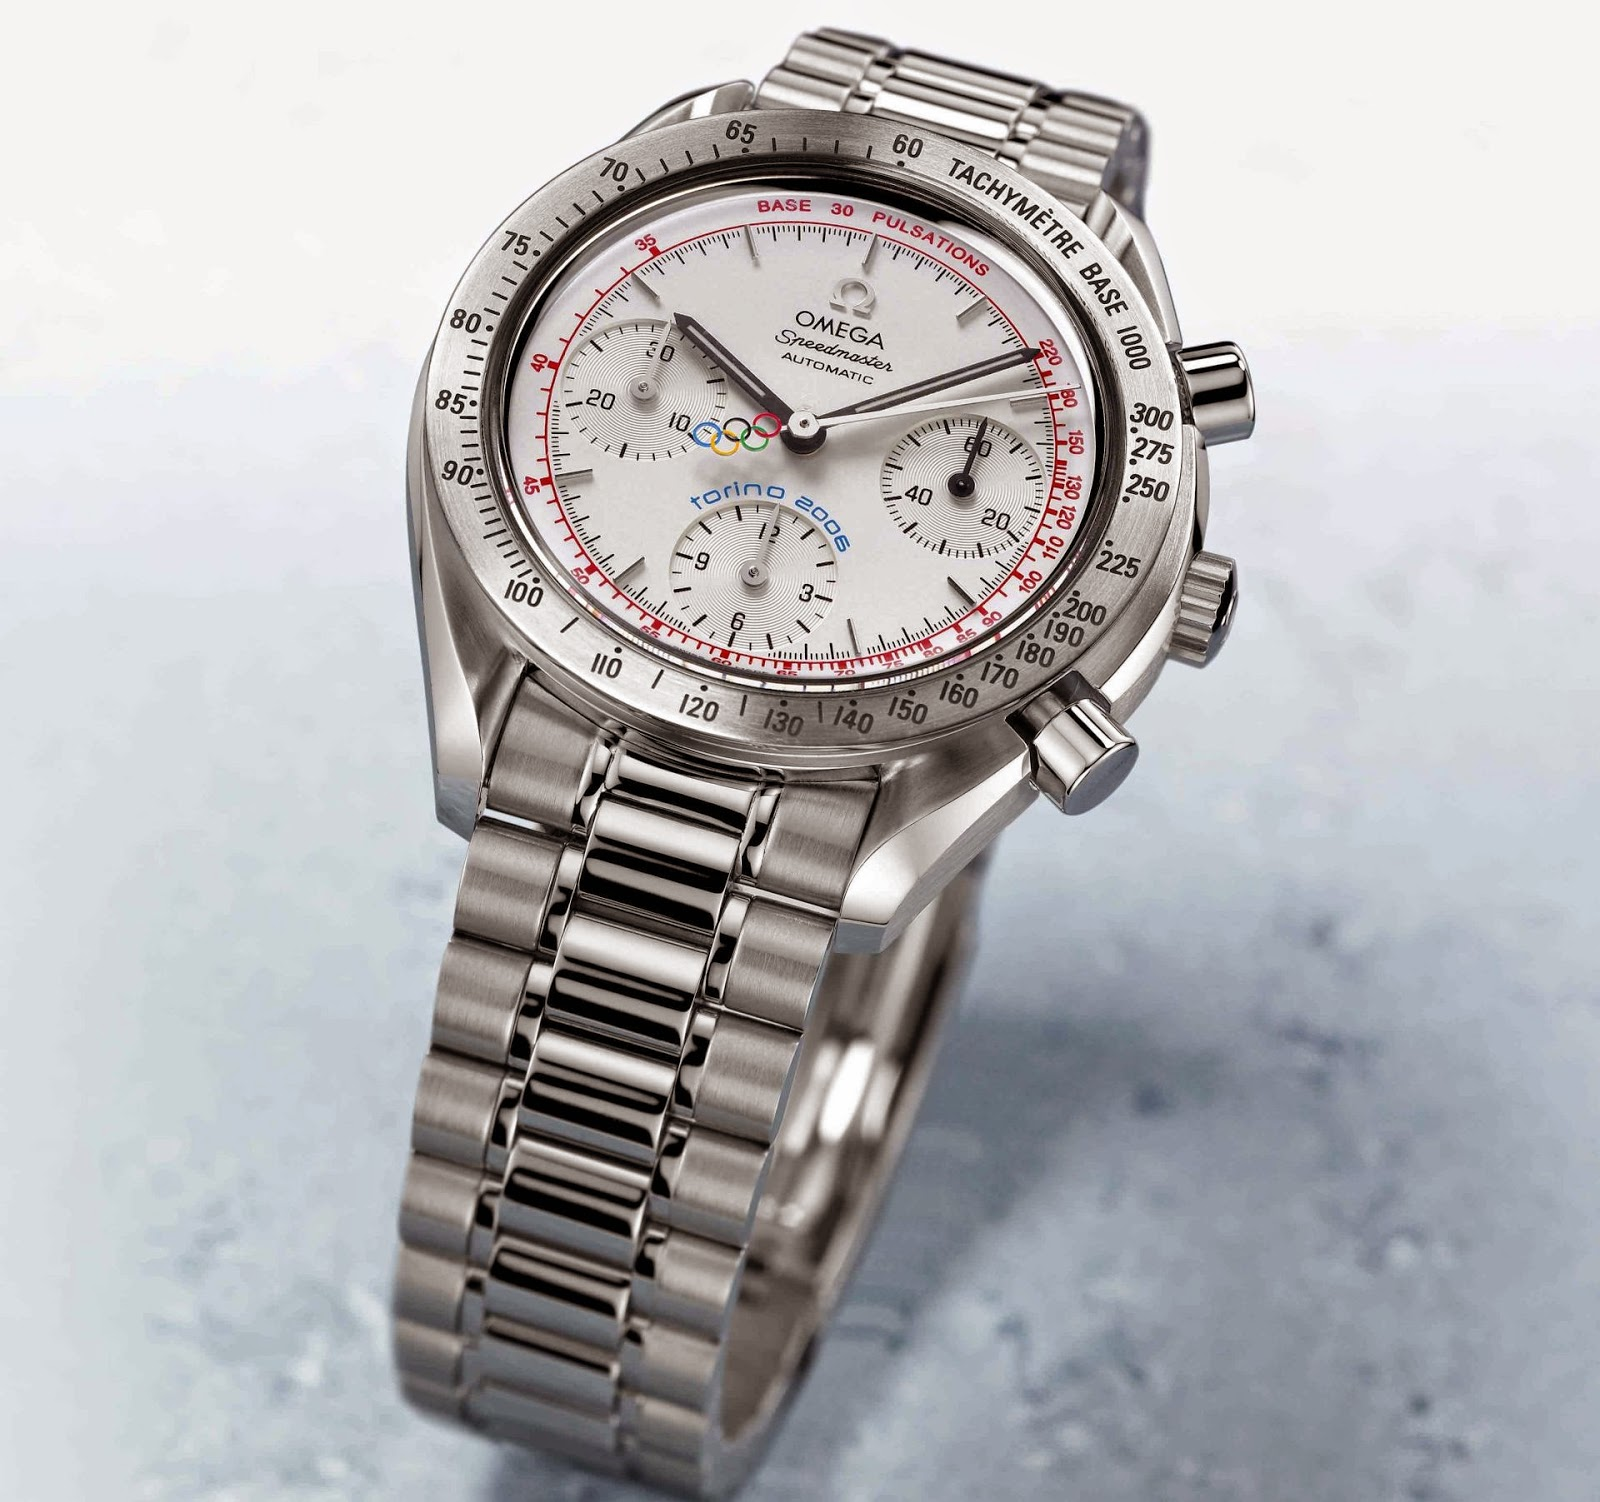 OMEGA Torino 2006 replica watch